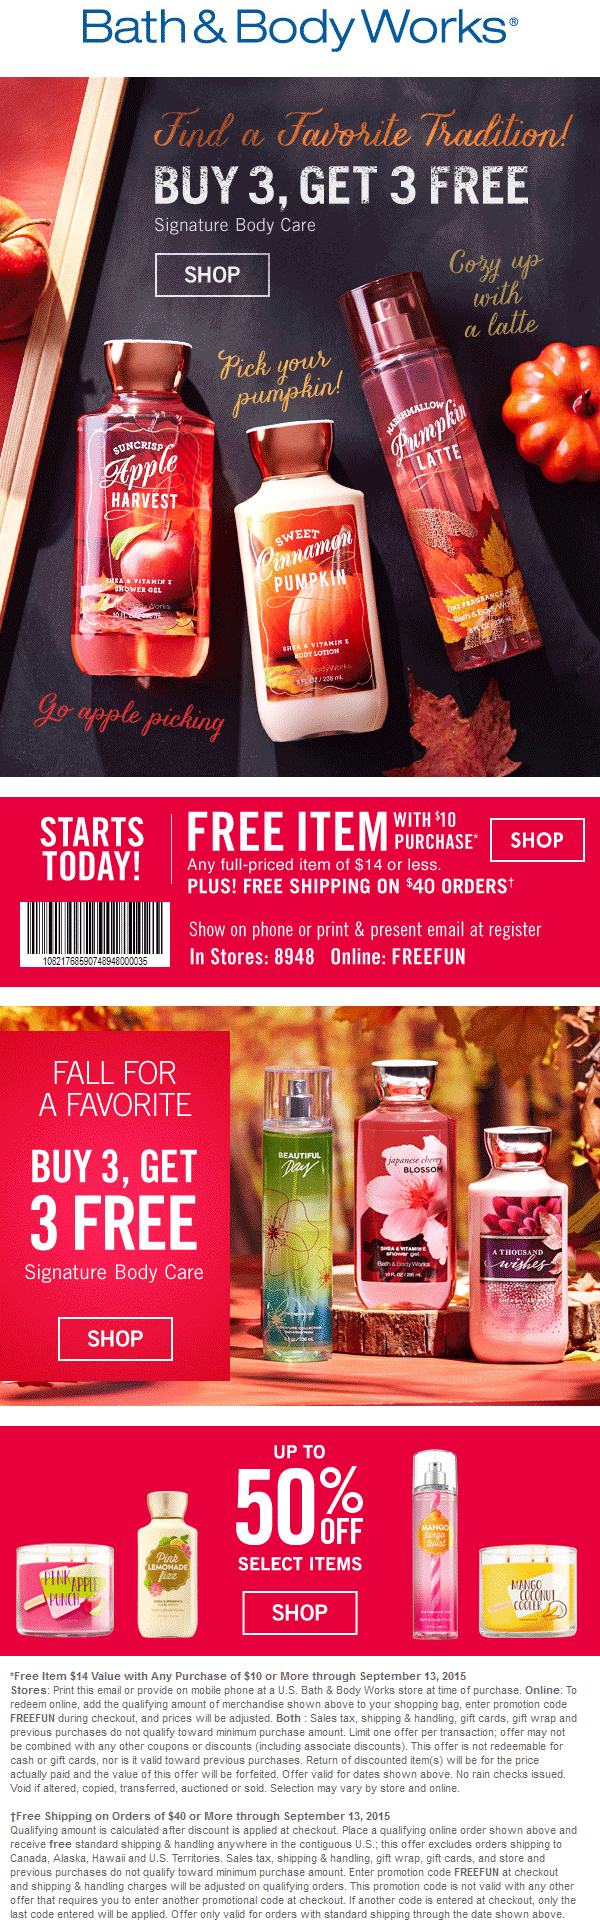 Bath & Body Works Coupon May 2018 $14 item free with $10 spent at Bath & Body Works, or online via promo code FREEFUN